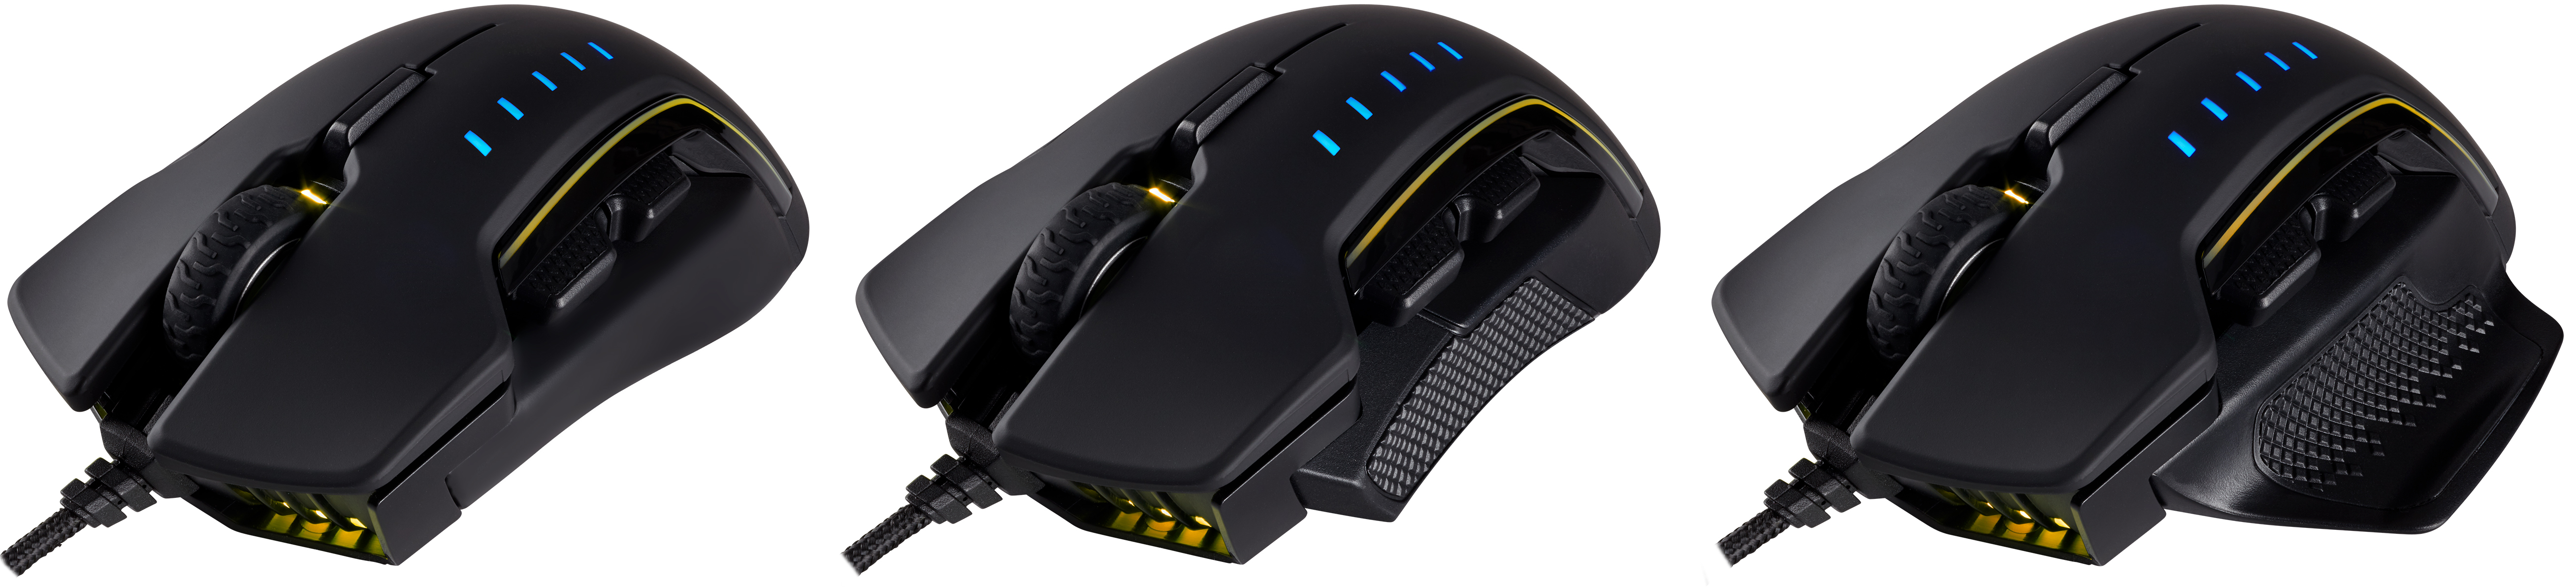 Corsair launches glaive rgb mouse 16 000 departamento de for Oficina de informacion